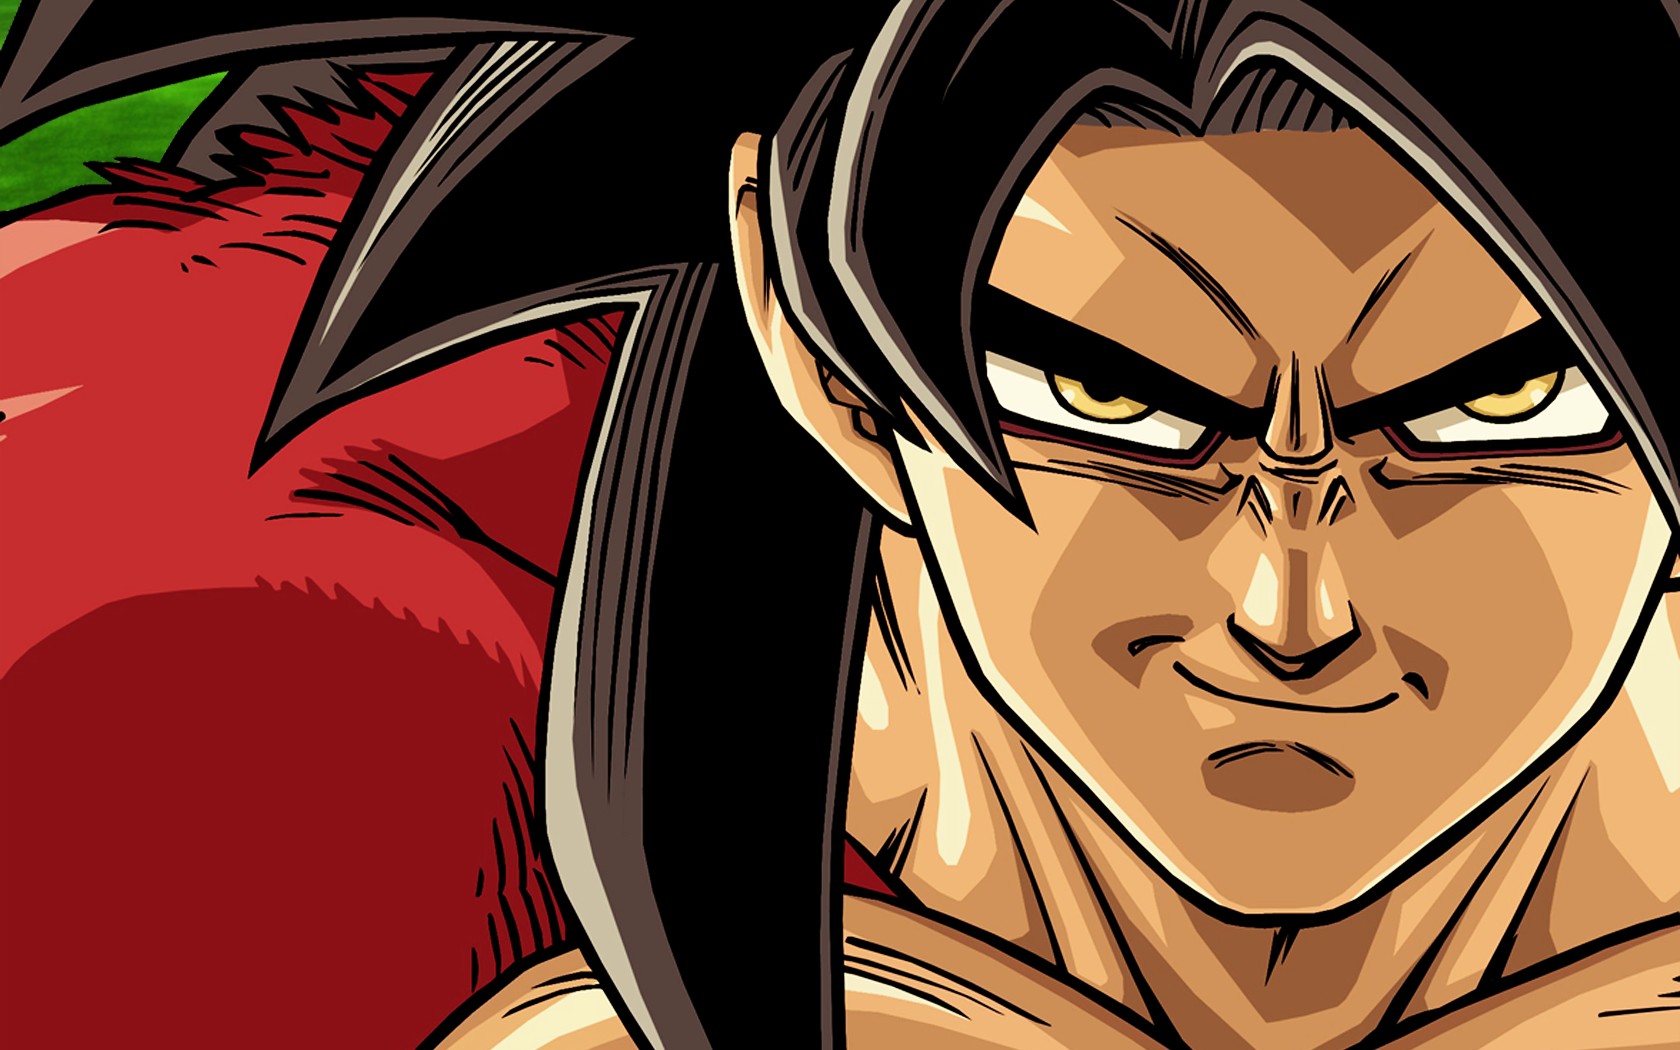 Goku SSJ4 2 Wide Wallpaper   1680x1050 20582 HD Wallpaper Res 1680x1050